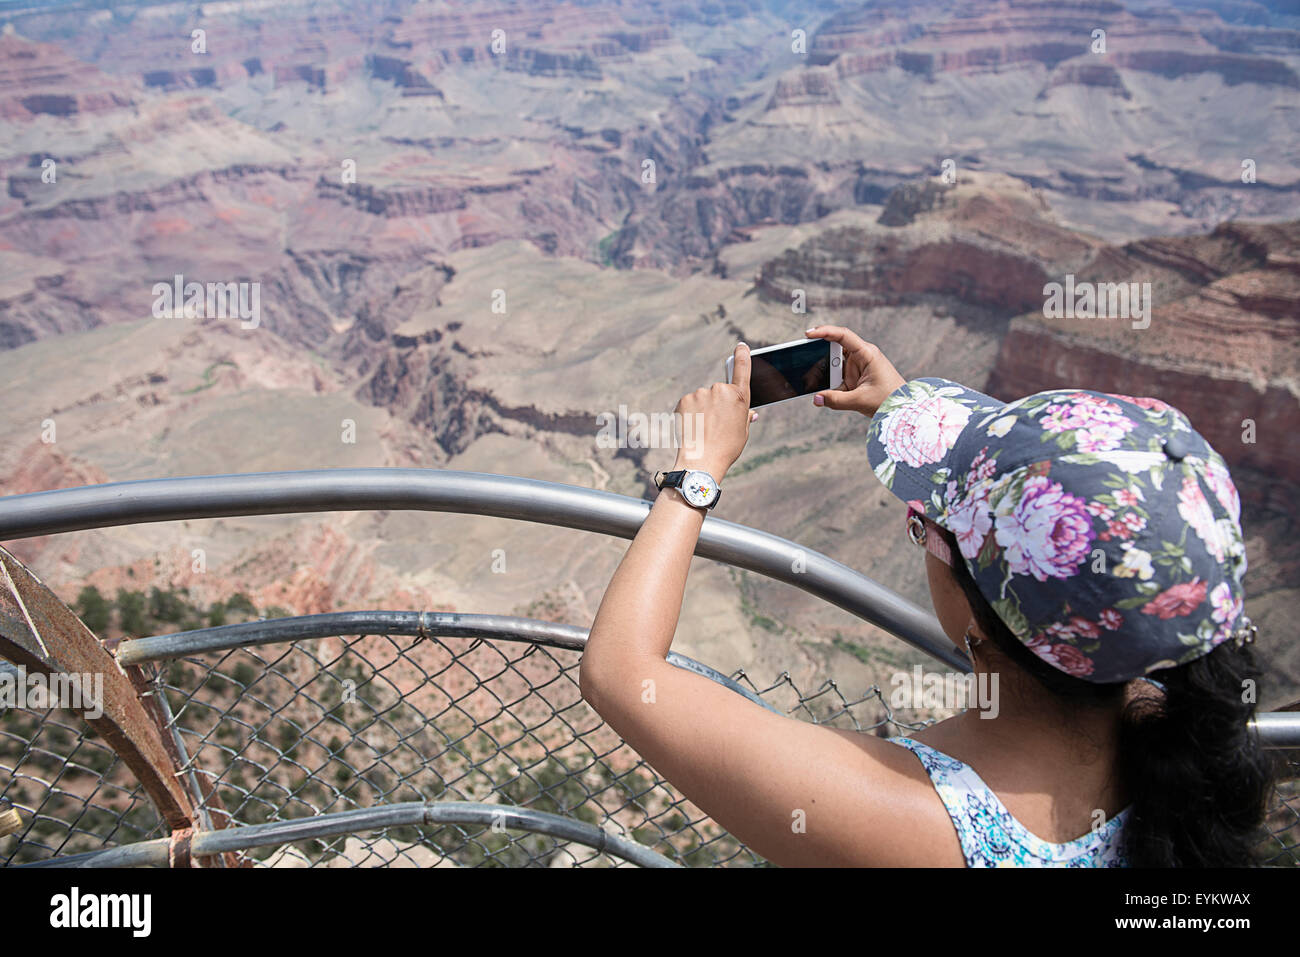 A woman taking photos of the Grand Canyon on her iphone. - Stock Image